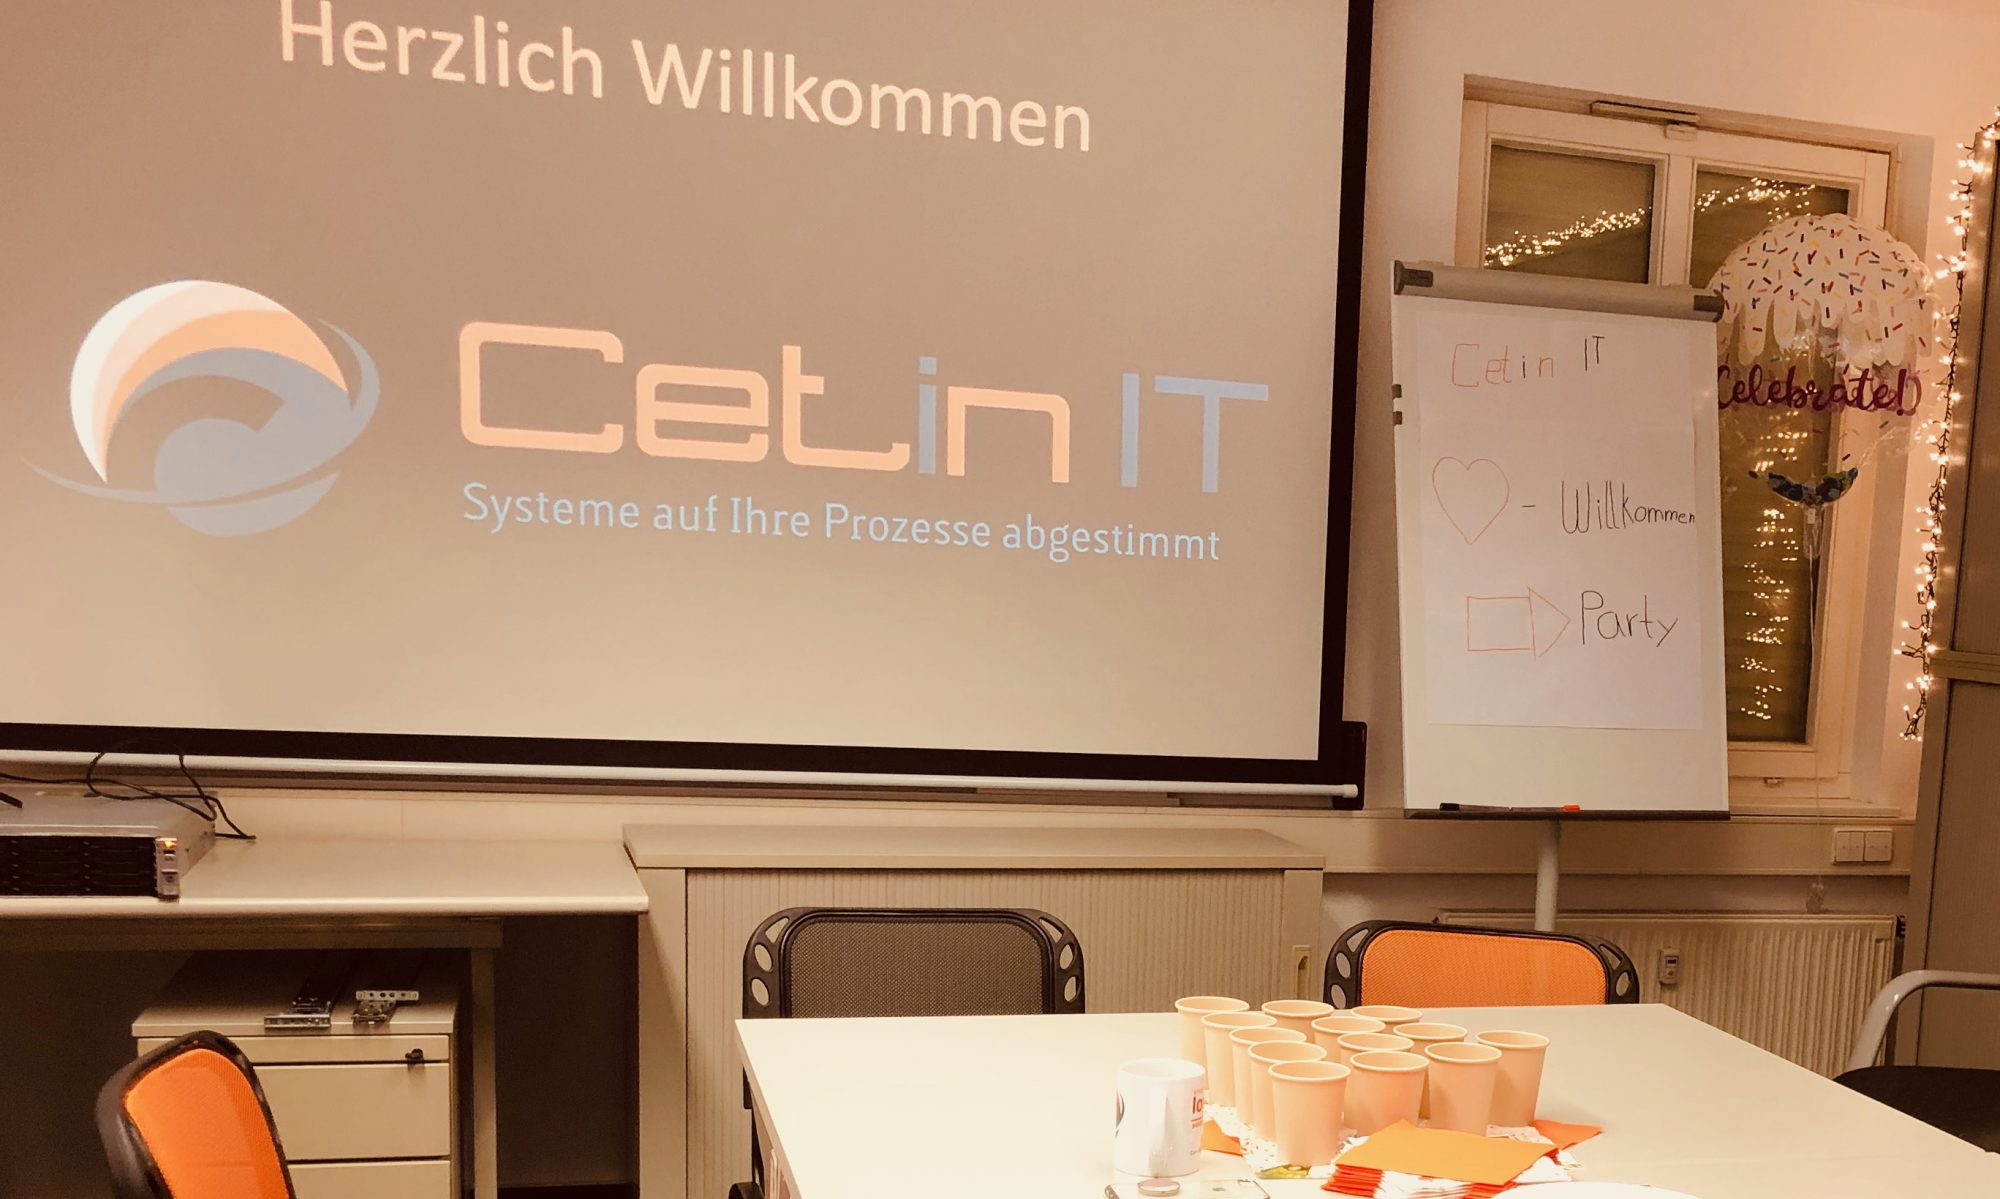 Cetin IT - Managed Service Provider